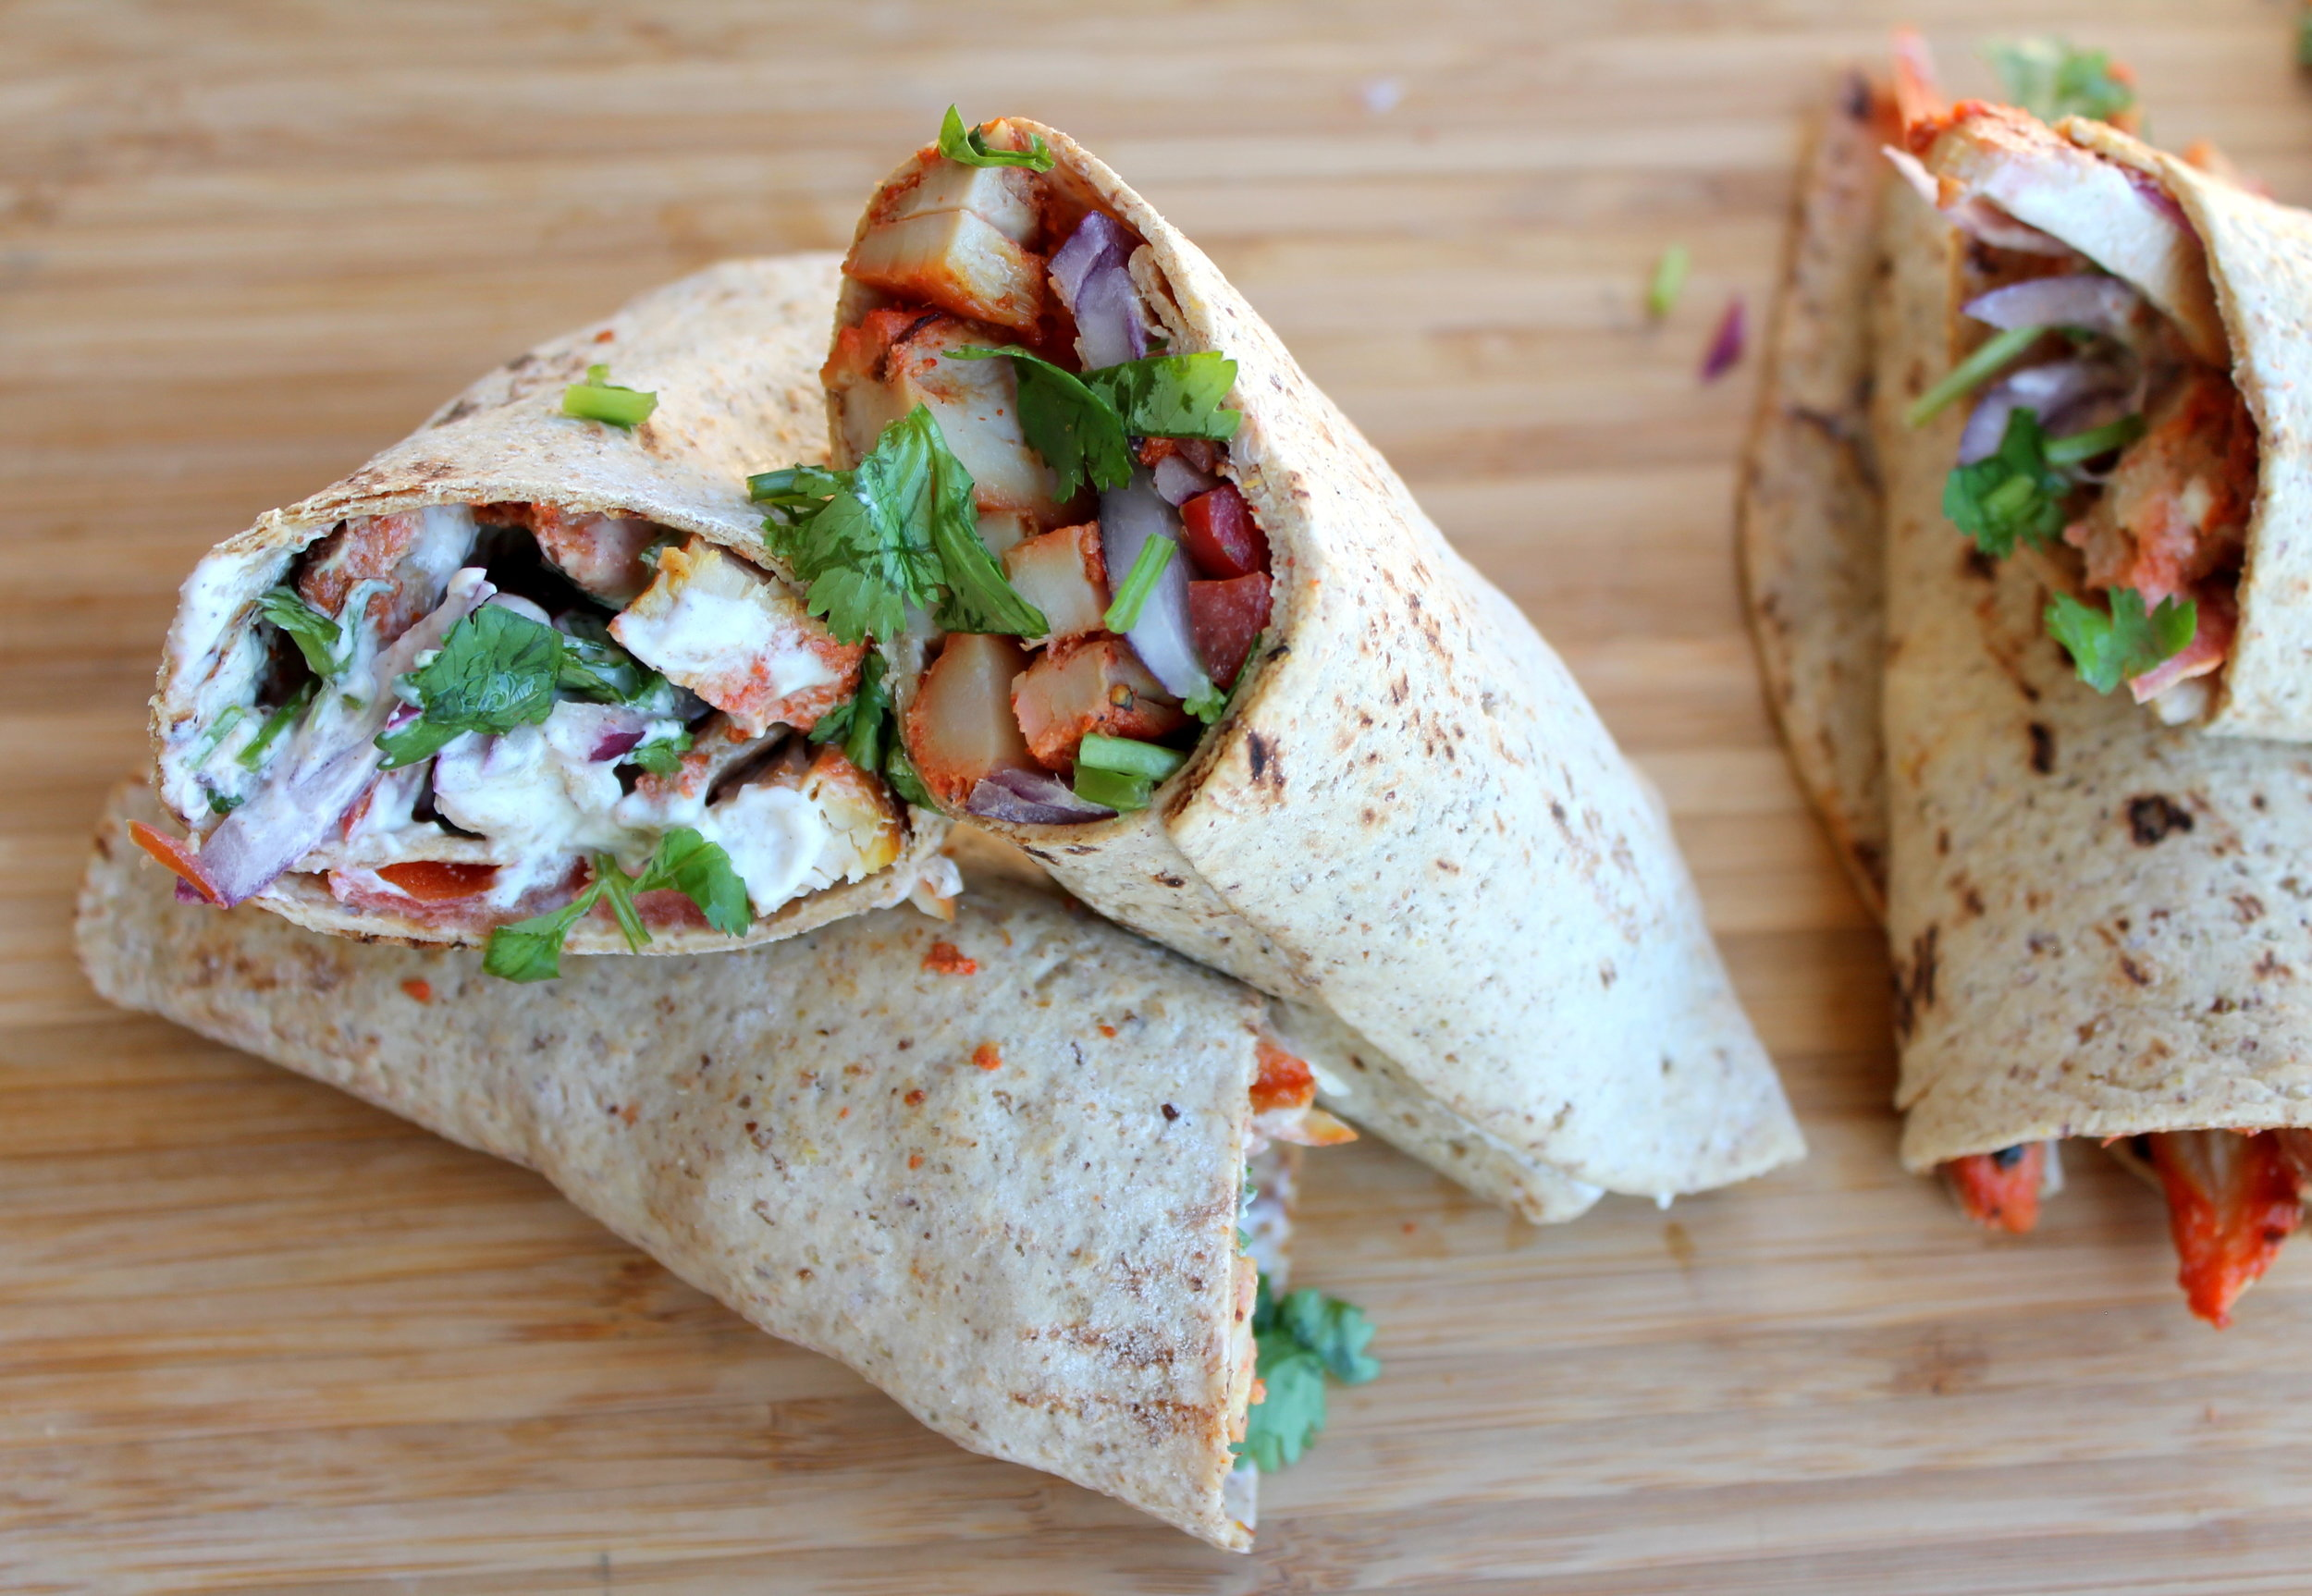 Chicken Tikka Wrap, a quick, healthy, flavorful option for a weeknight dinner or lunch. Juicy chicken tikka pieces are tightly wrapped with delicious spread and toppings. Vegetarian, vegan alternatives available!